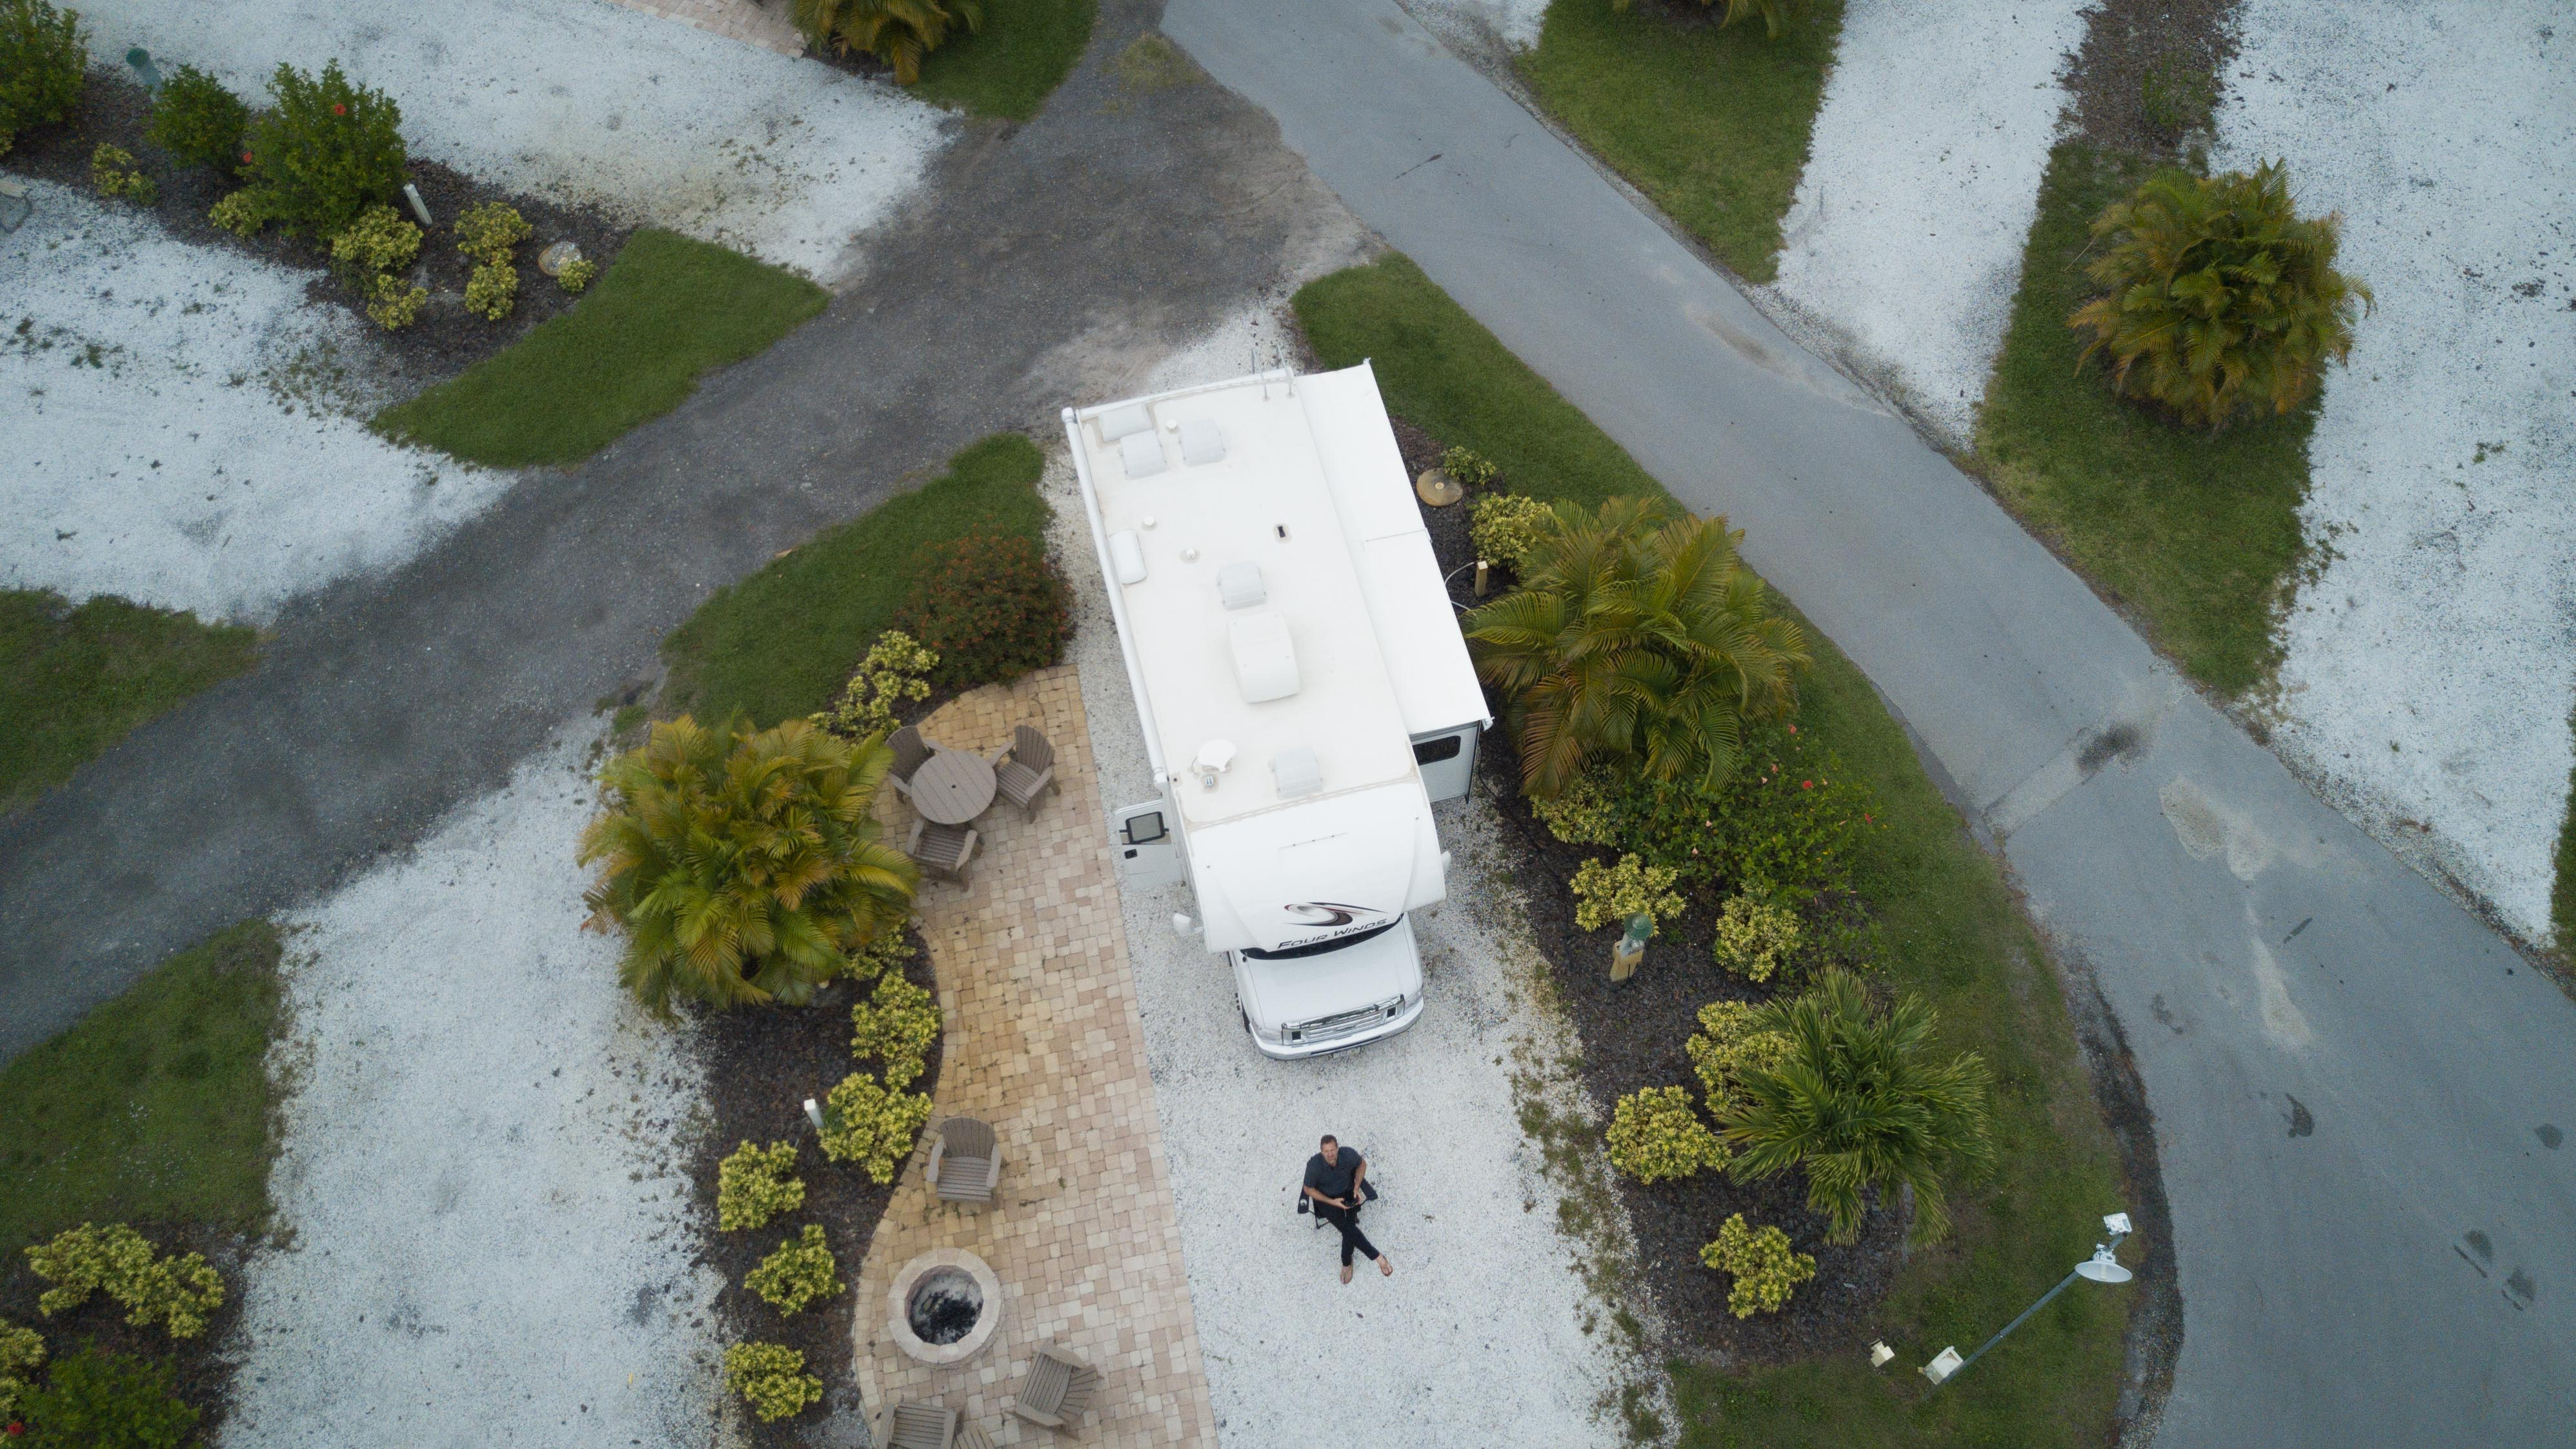 Florida - drone flying to capture stills.